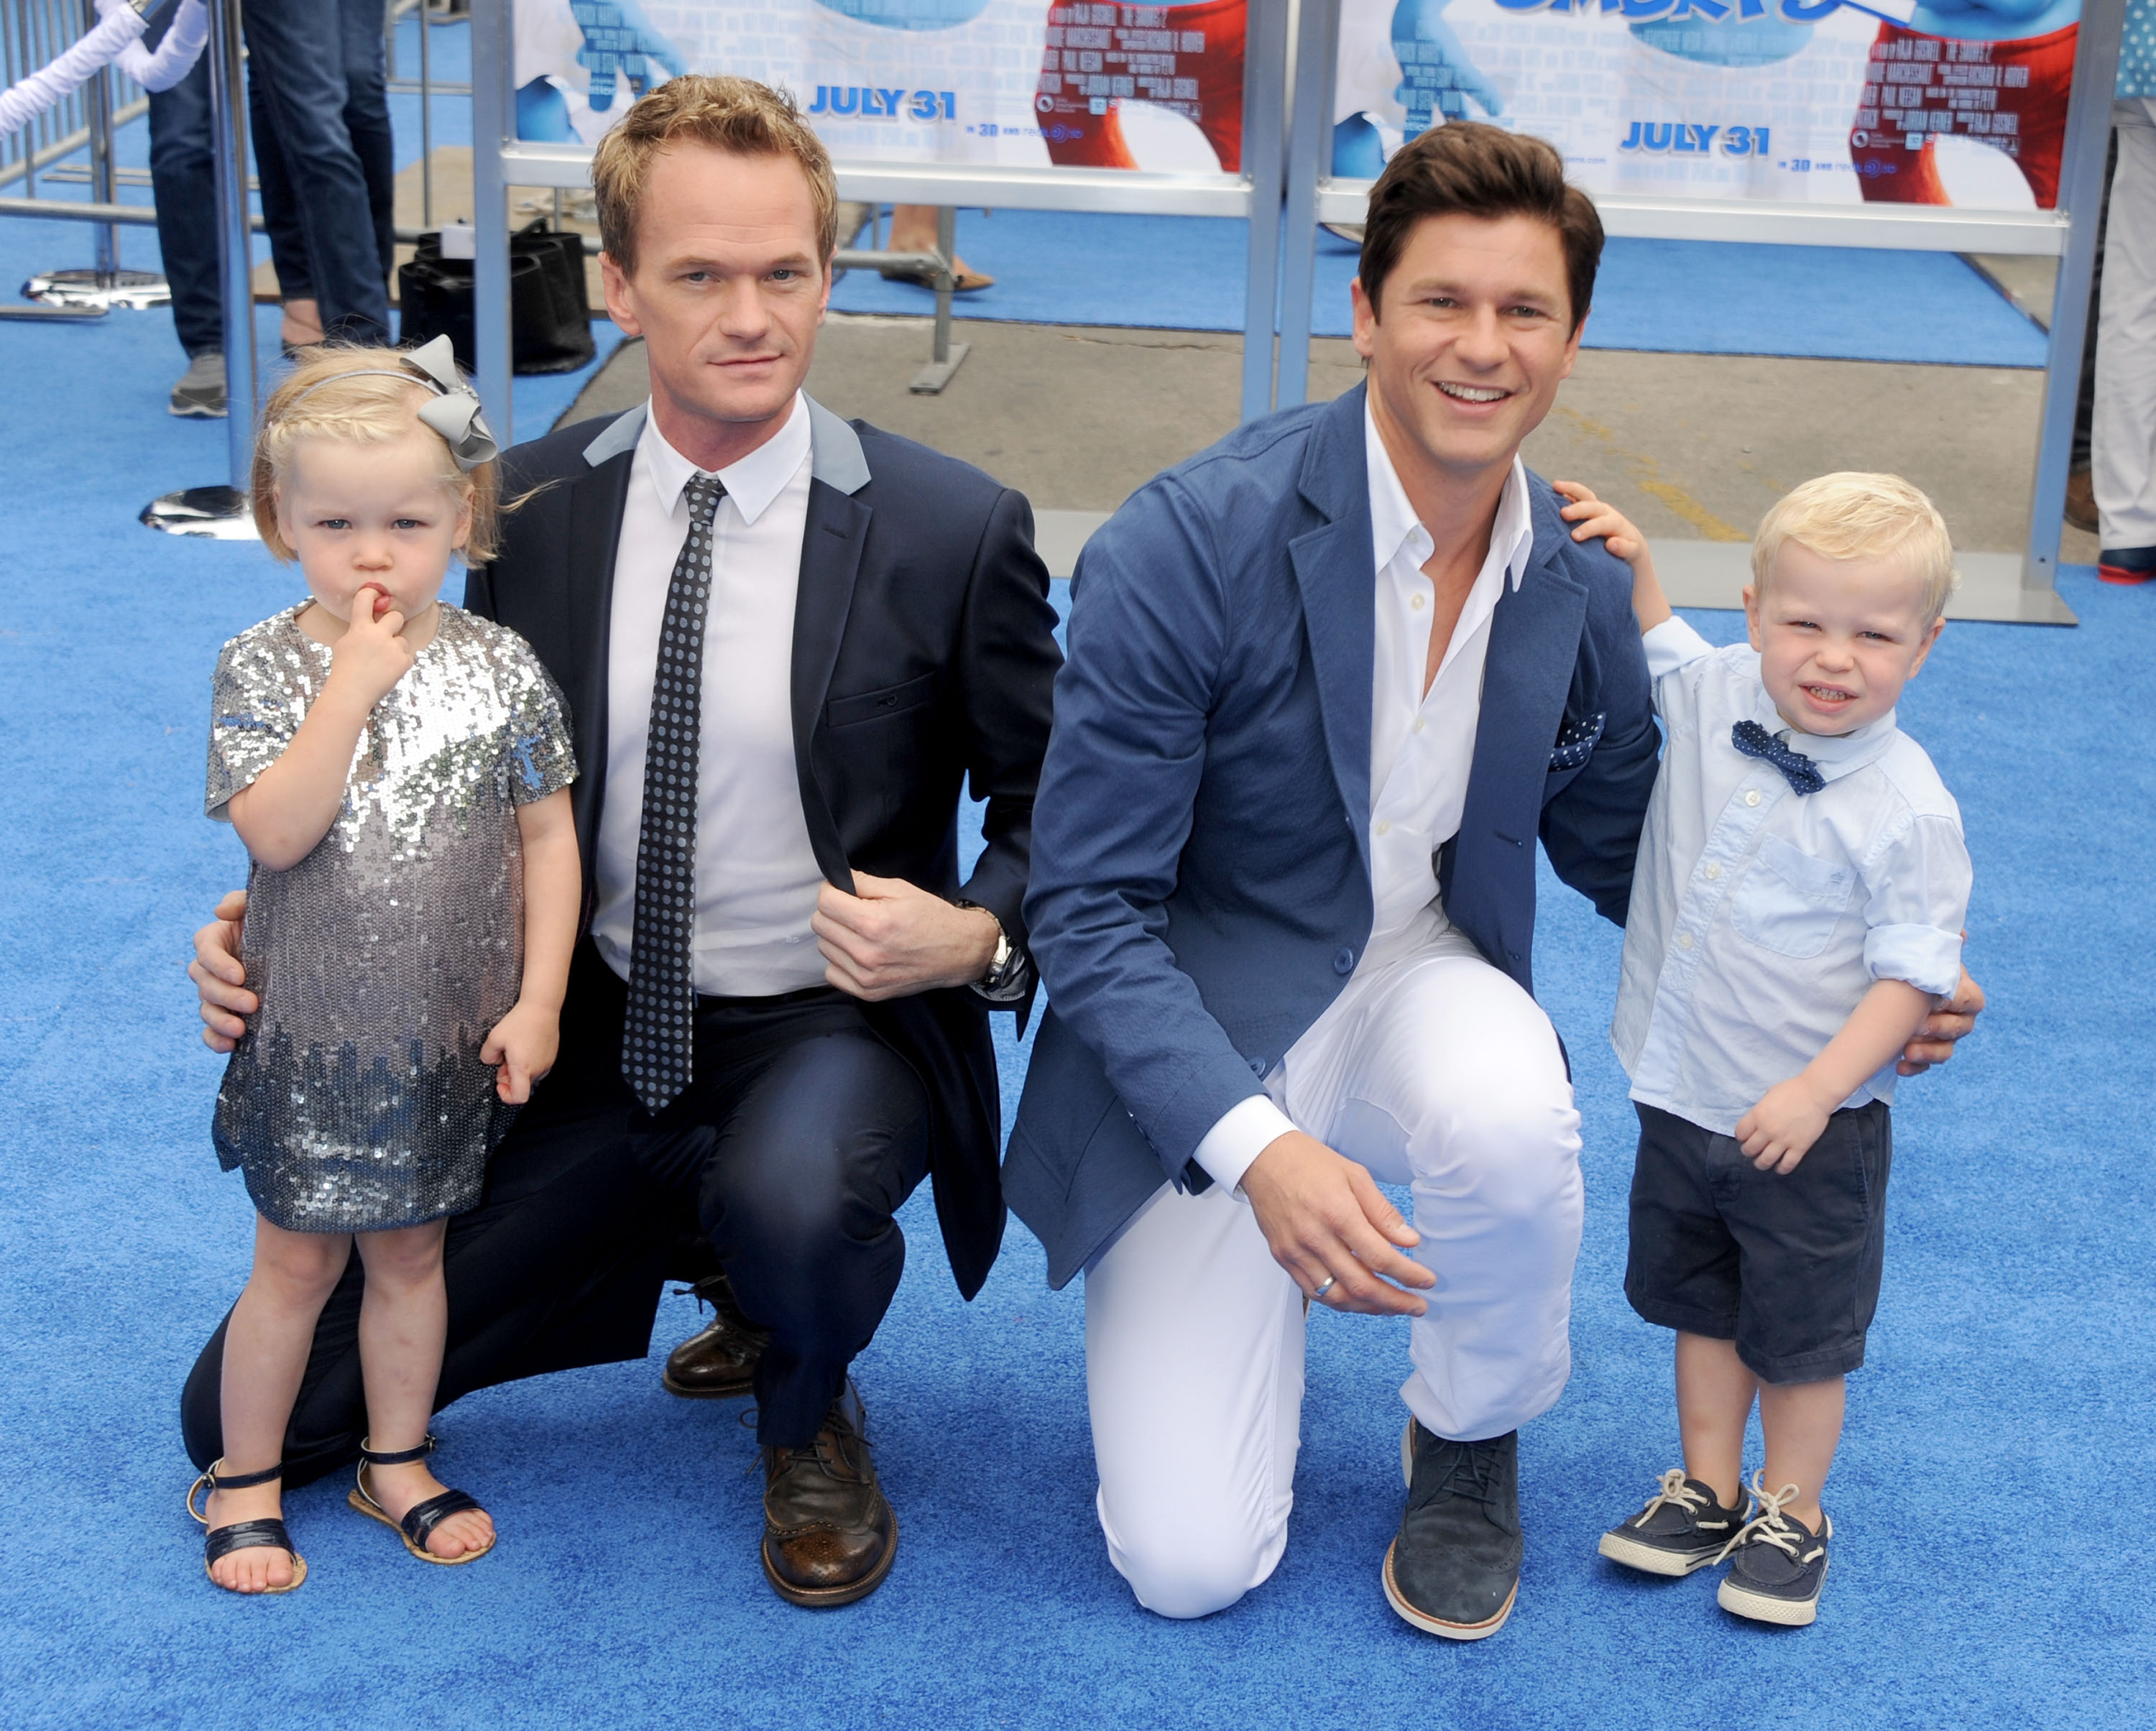 Neil Patrick Harris' kids are crazy fab on their first day of school